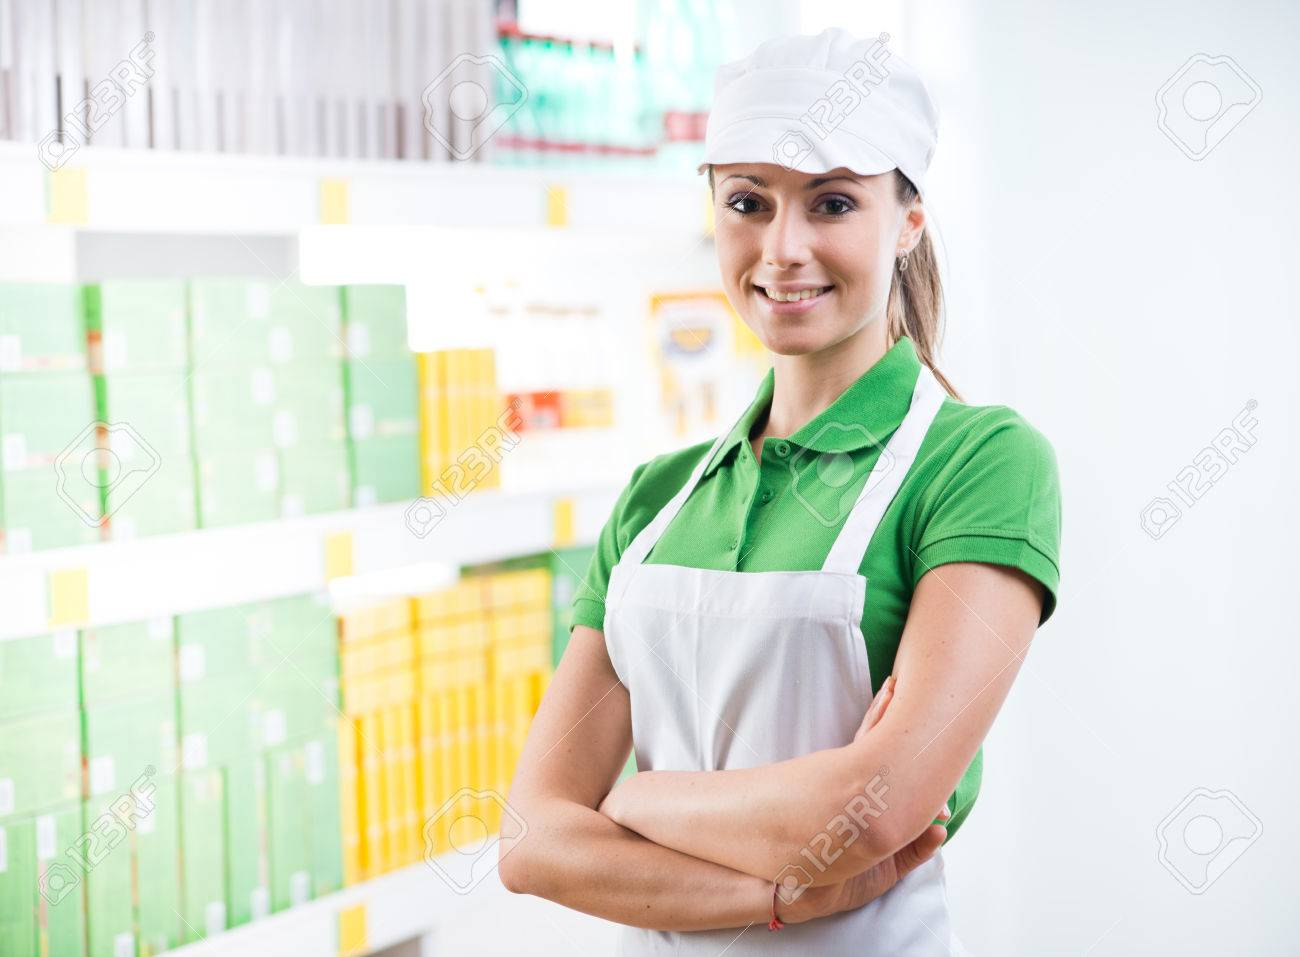 young female s clerk crossed arms smiling at camera stock photo young female s clerk crossed arms smiling at camera supermarket shelf on background